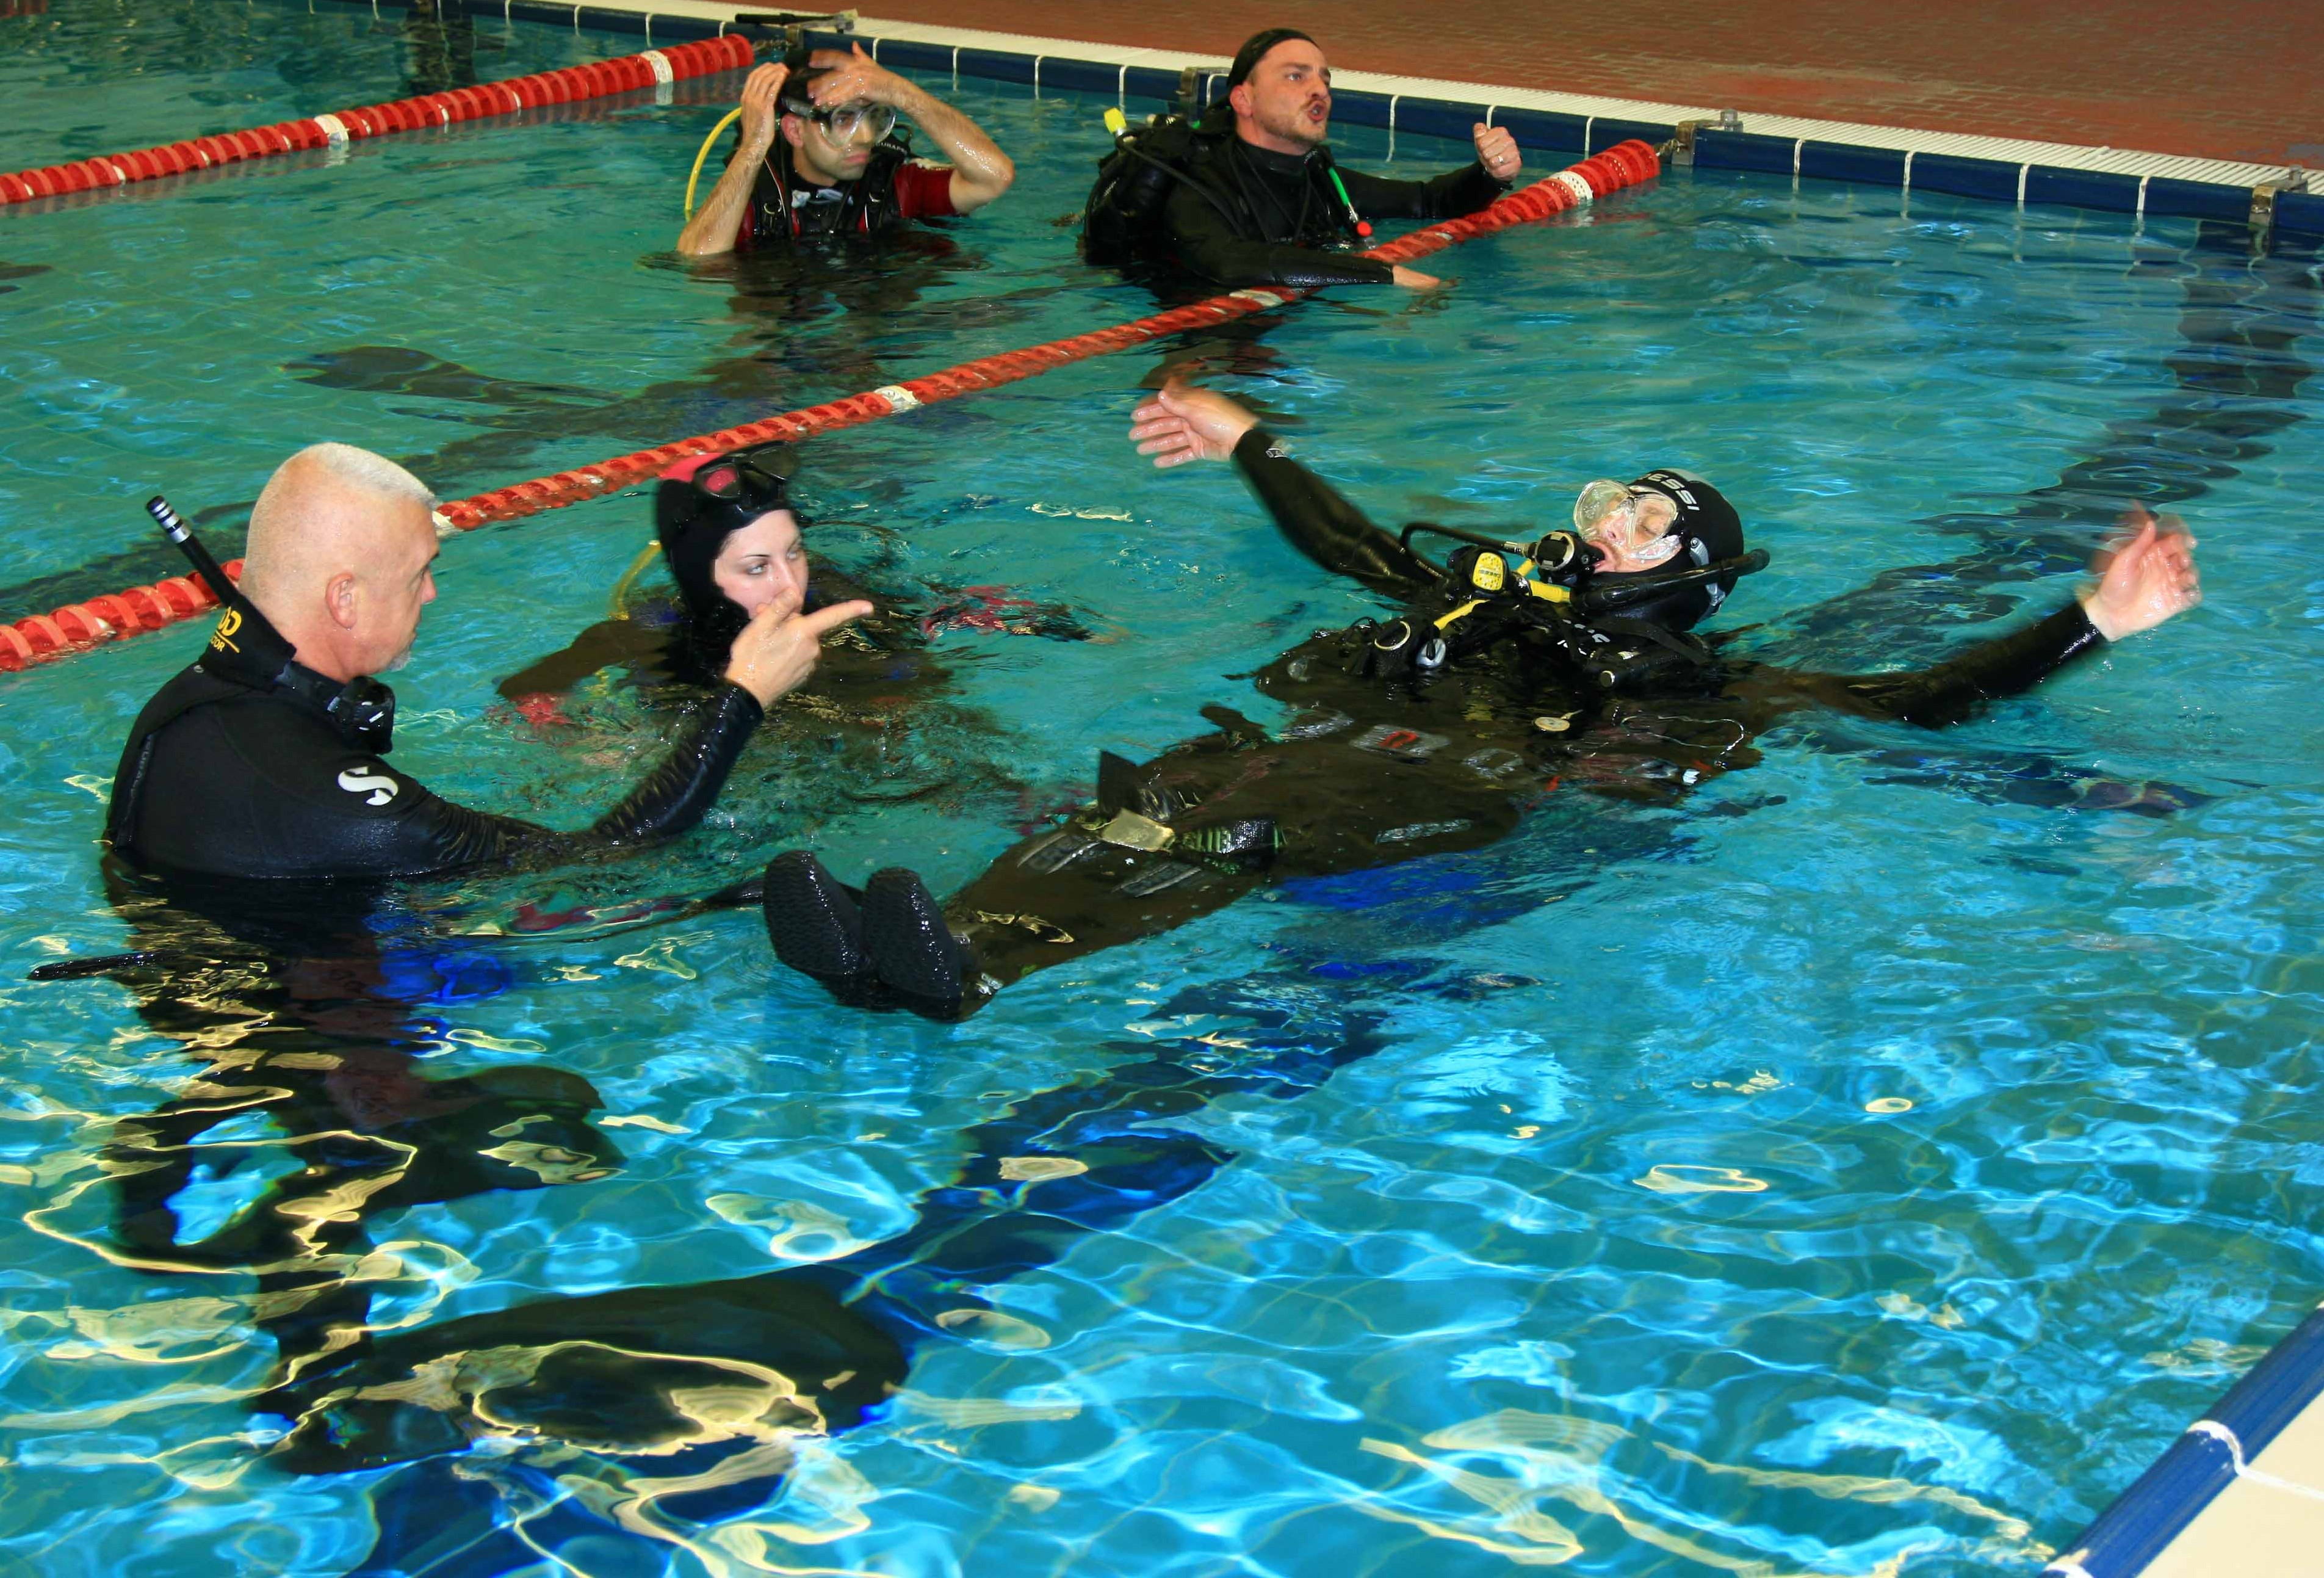 29th May - 2nd Handicapped Scuba Association (HSA)